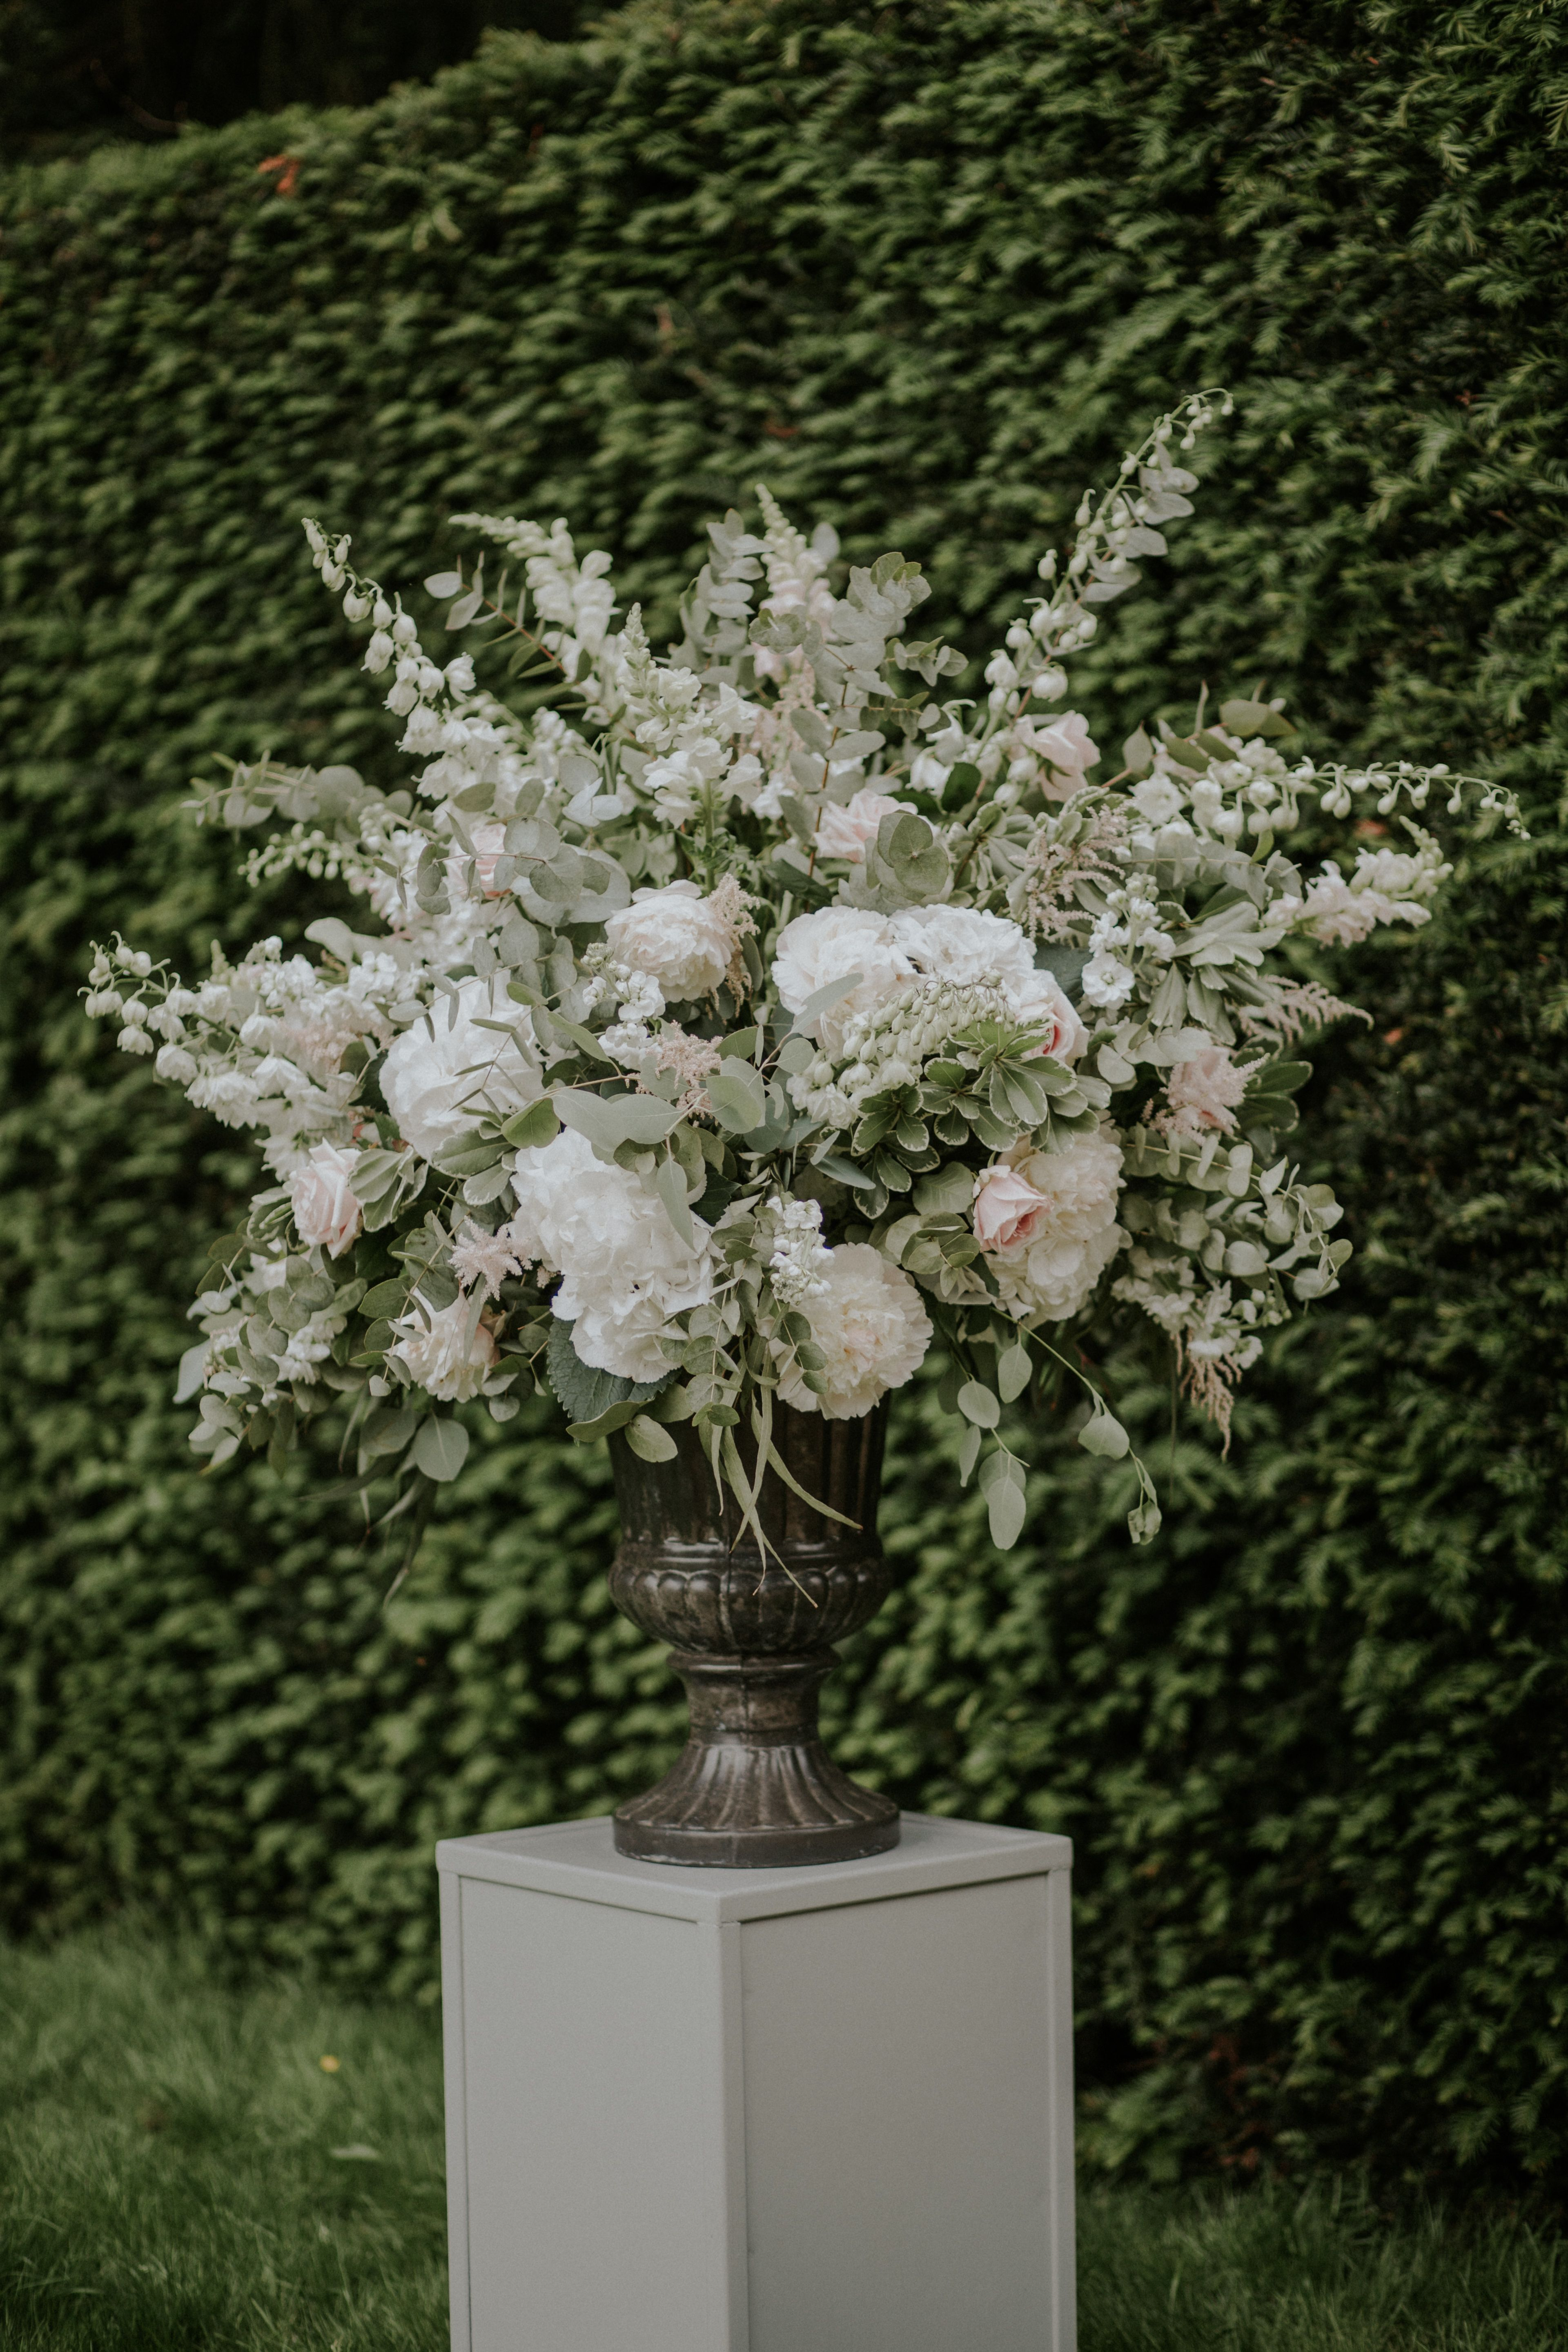 Urn by florist in the forest lola rose photography victoria